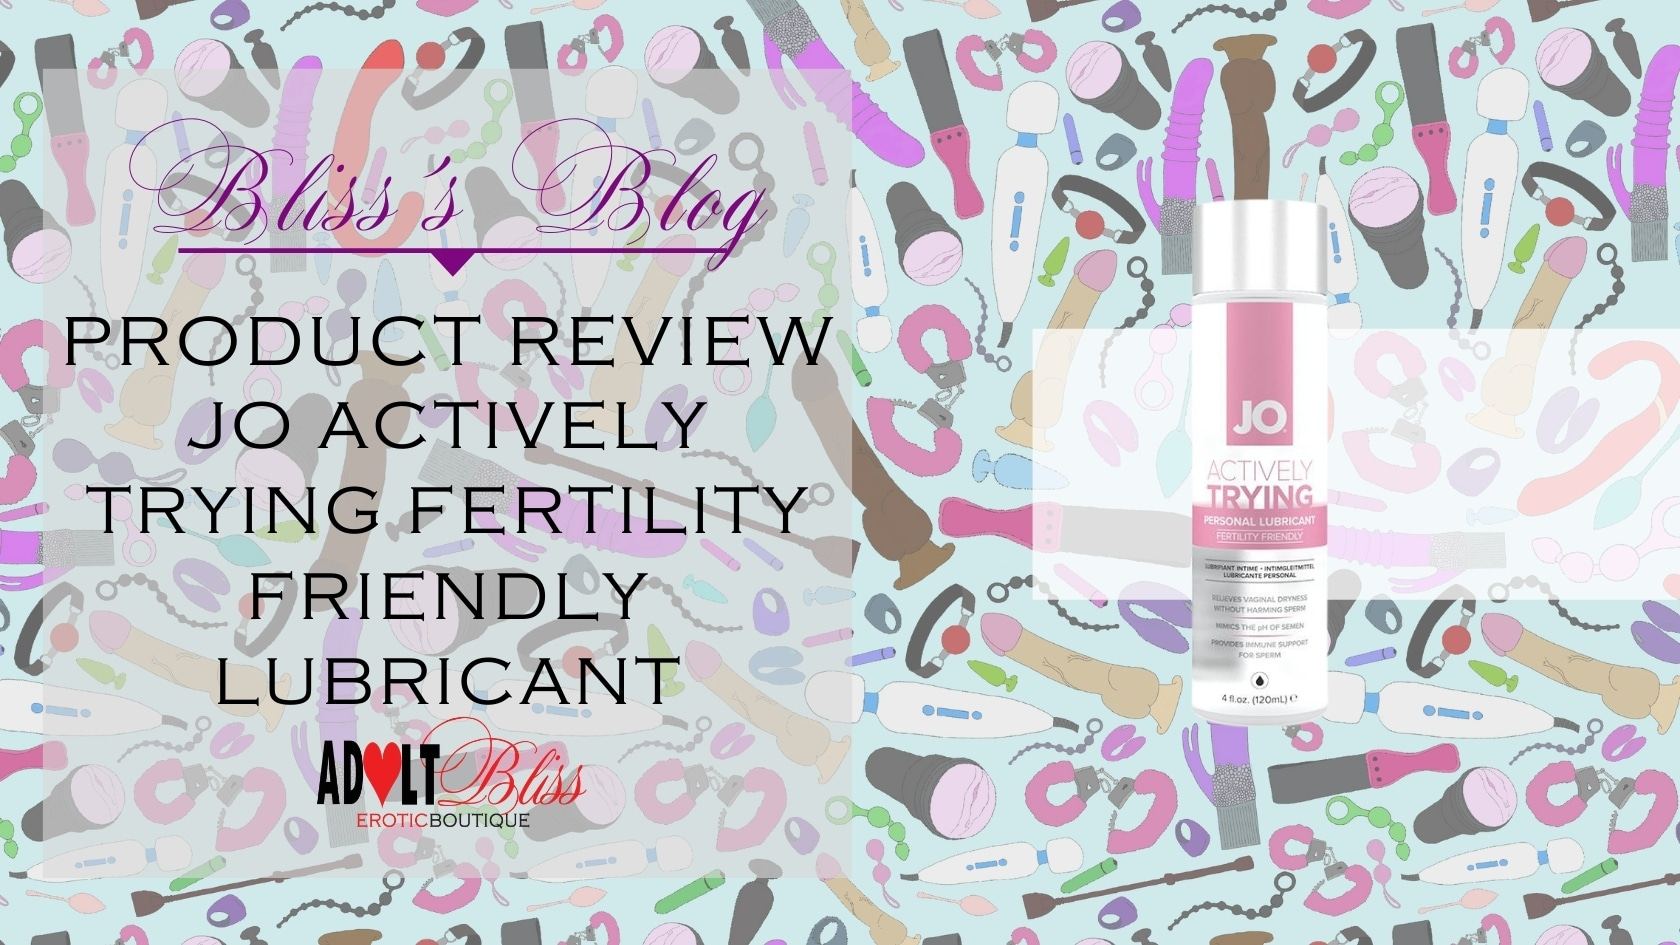 fertility friendly lubricant